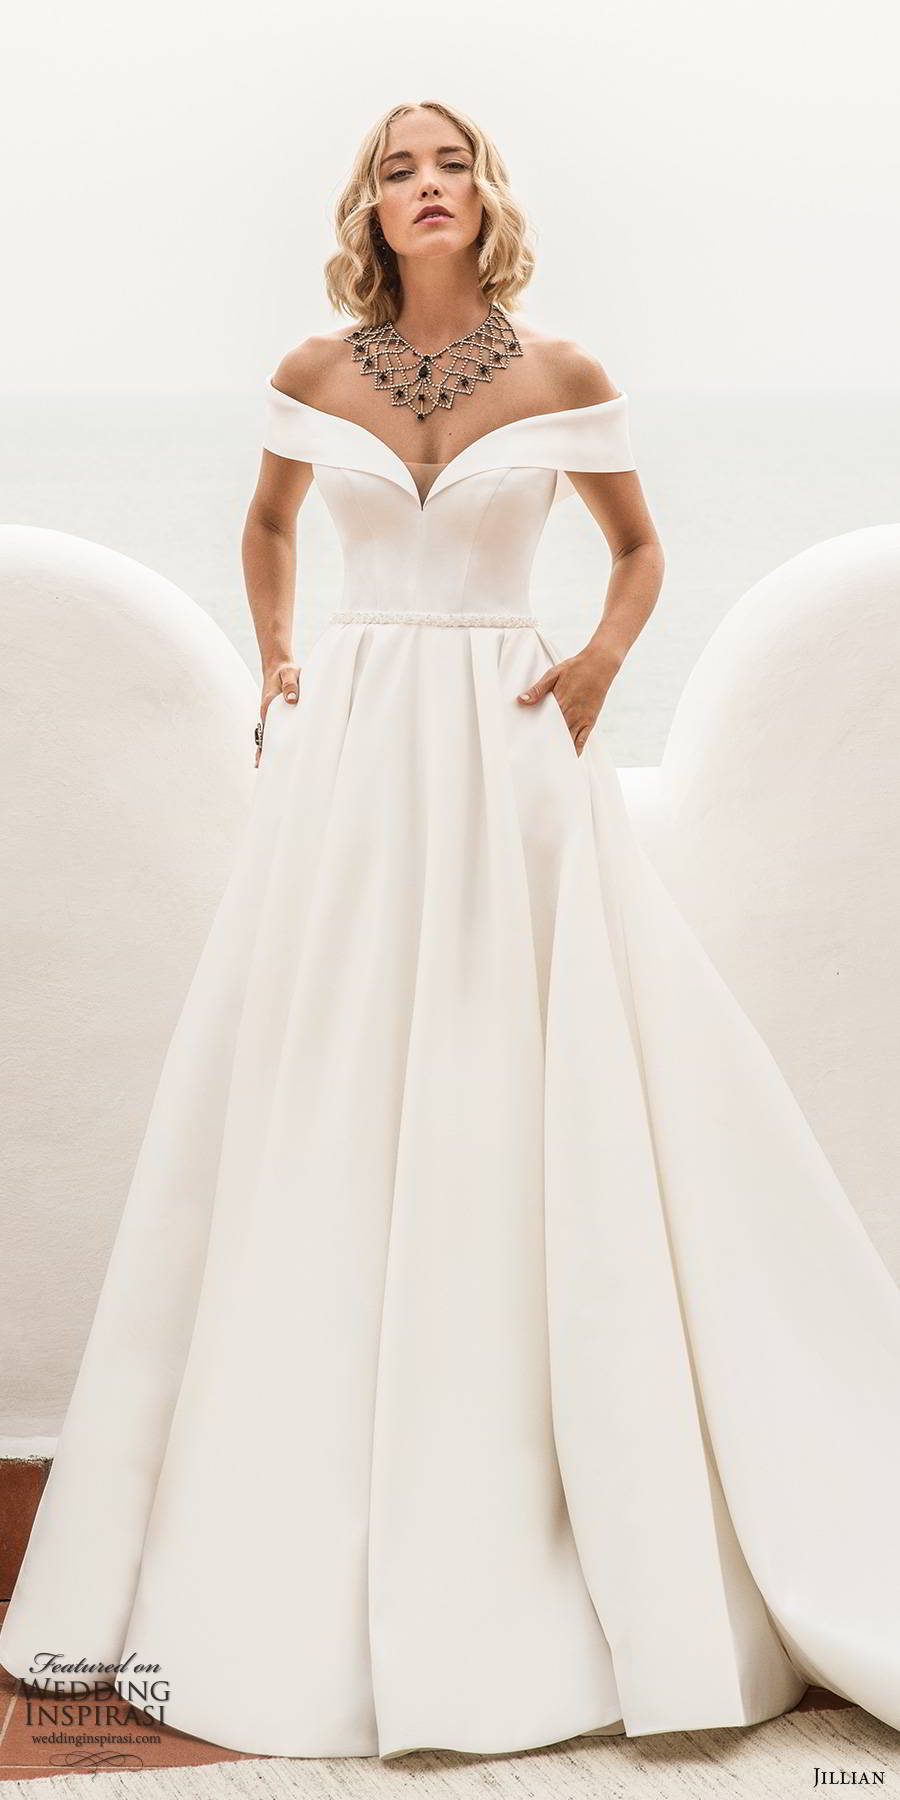 jillian sposa 2020 bridal off shoulder short sleeves sweetheart neckline minimally embellished clean elegant a line ball gown wedding dress pockets chapel train (3) mv